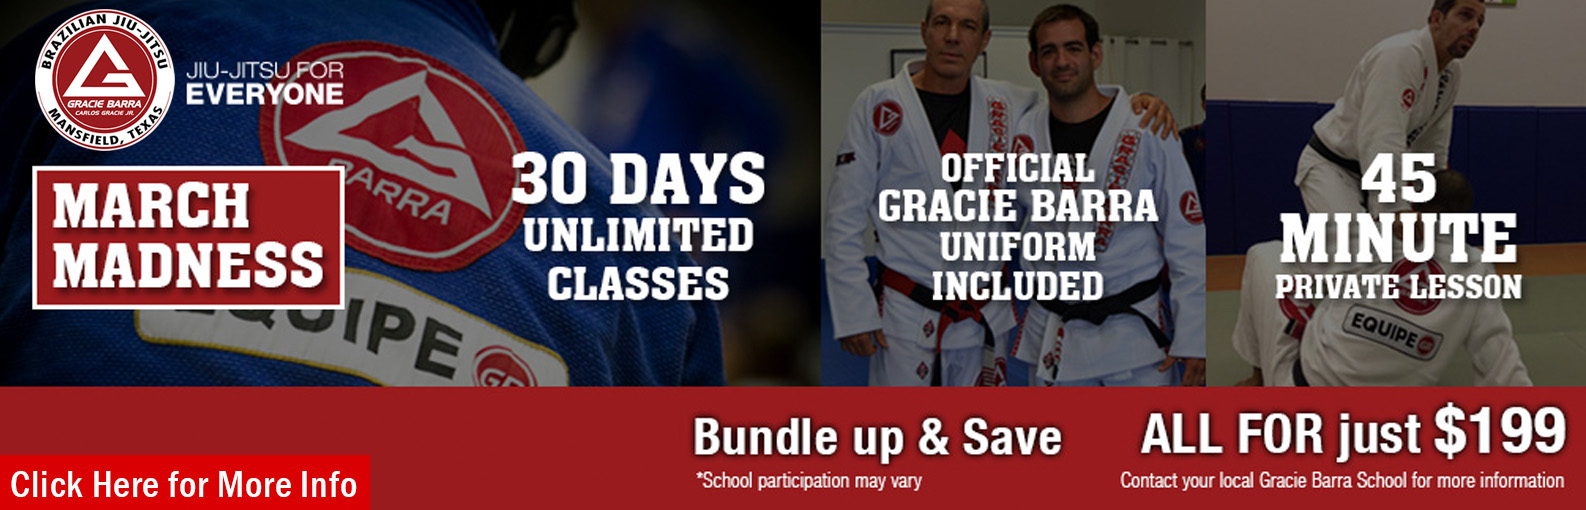 Getting started at Gracie Barra has never been easier in March 2015